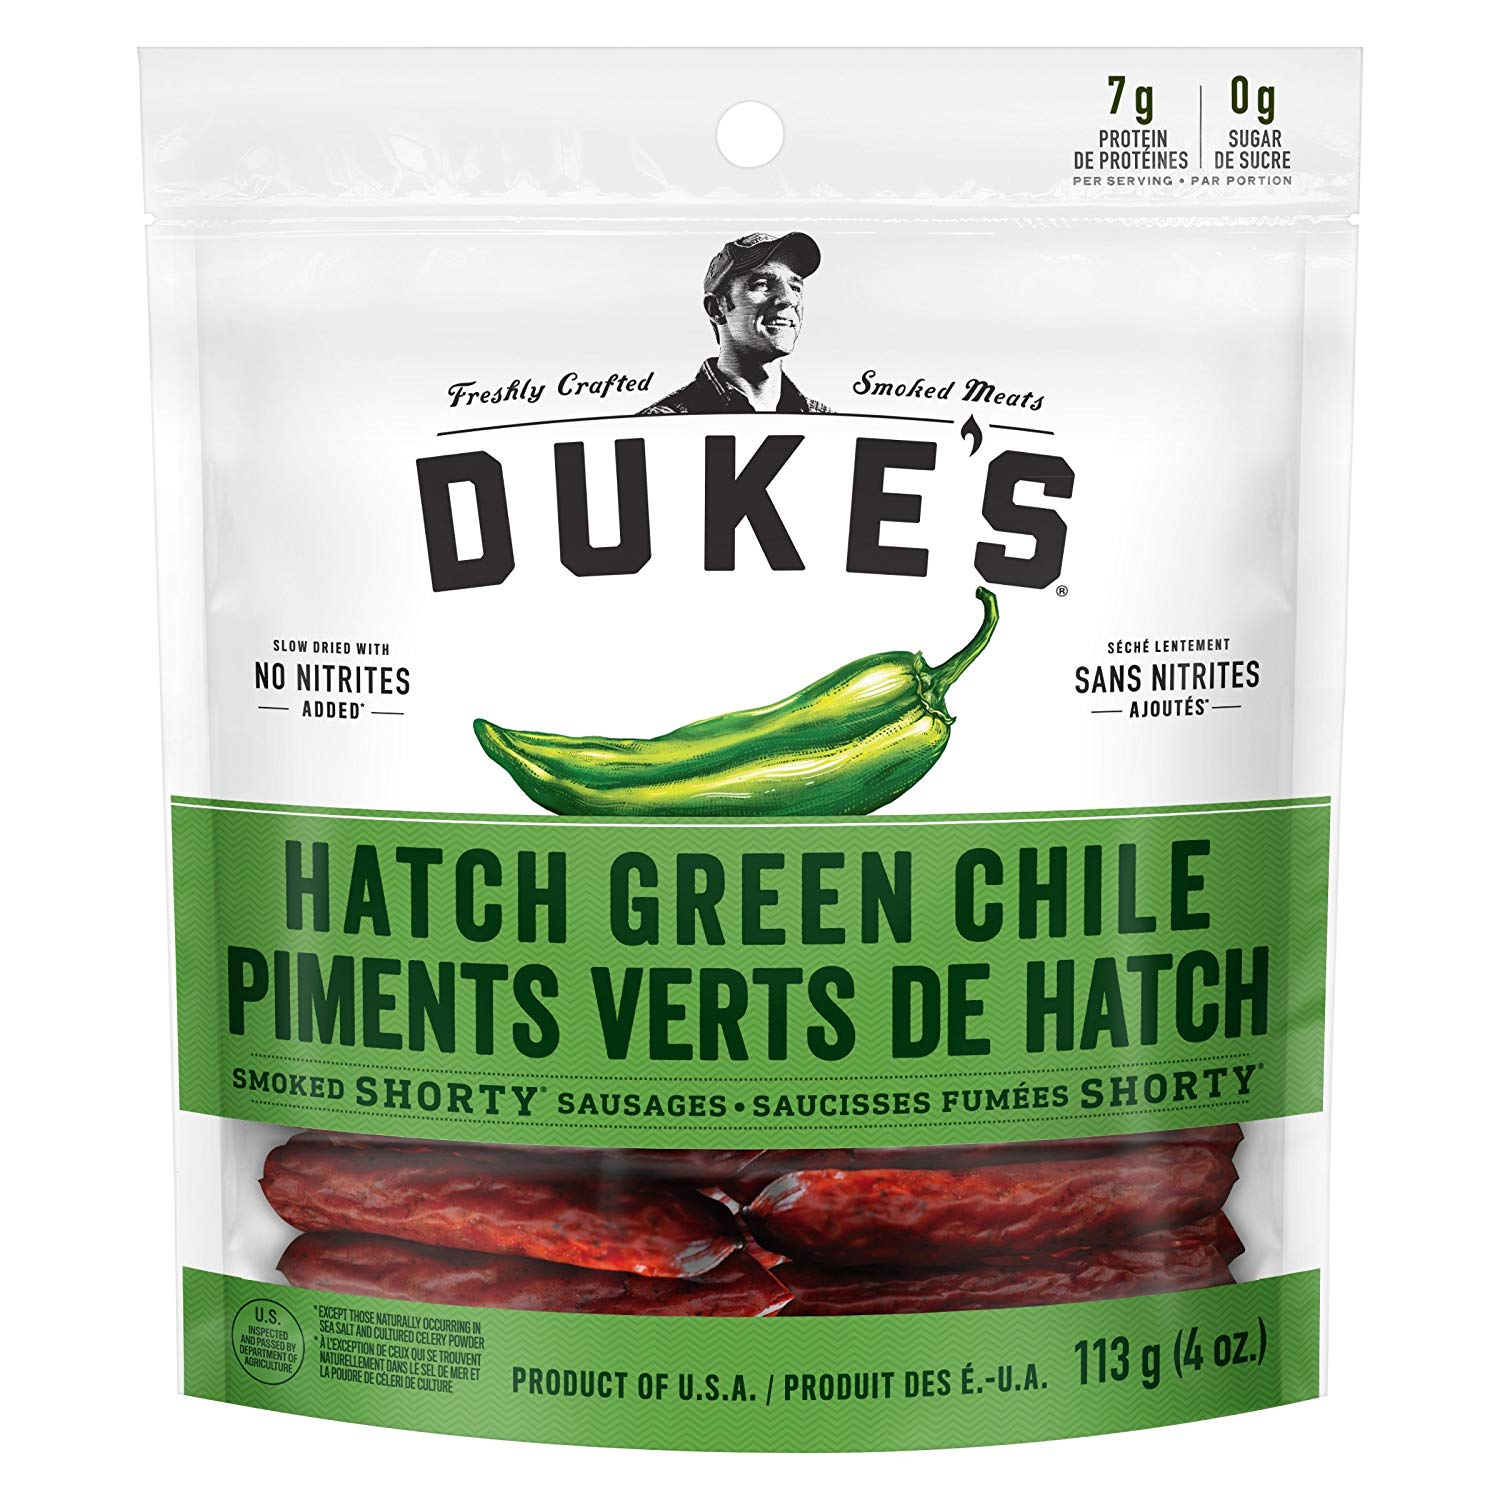 ONLY ON AMAZON: Duke's® Smoked Shorty Sausages - Hatch Green Chile